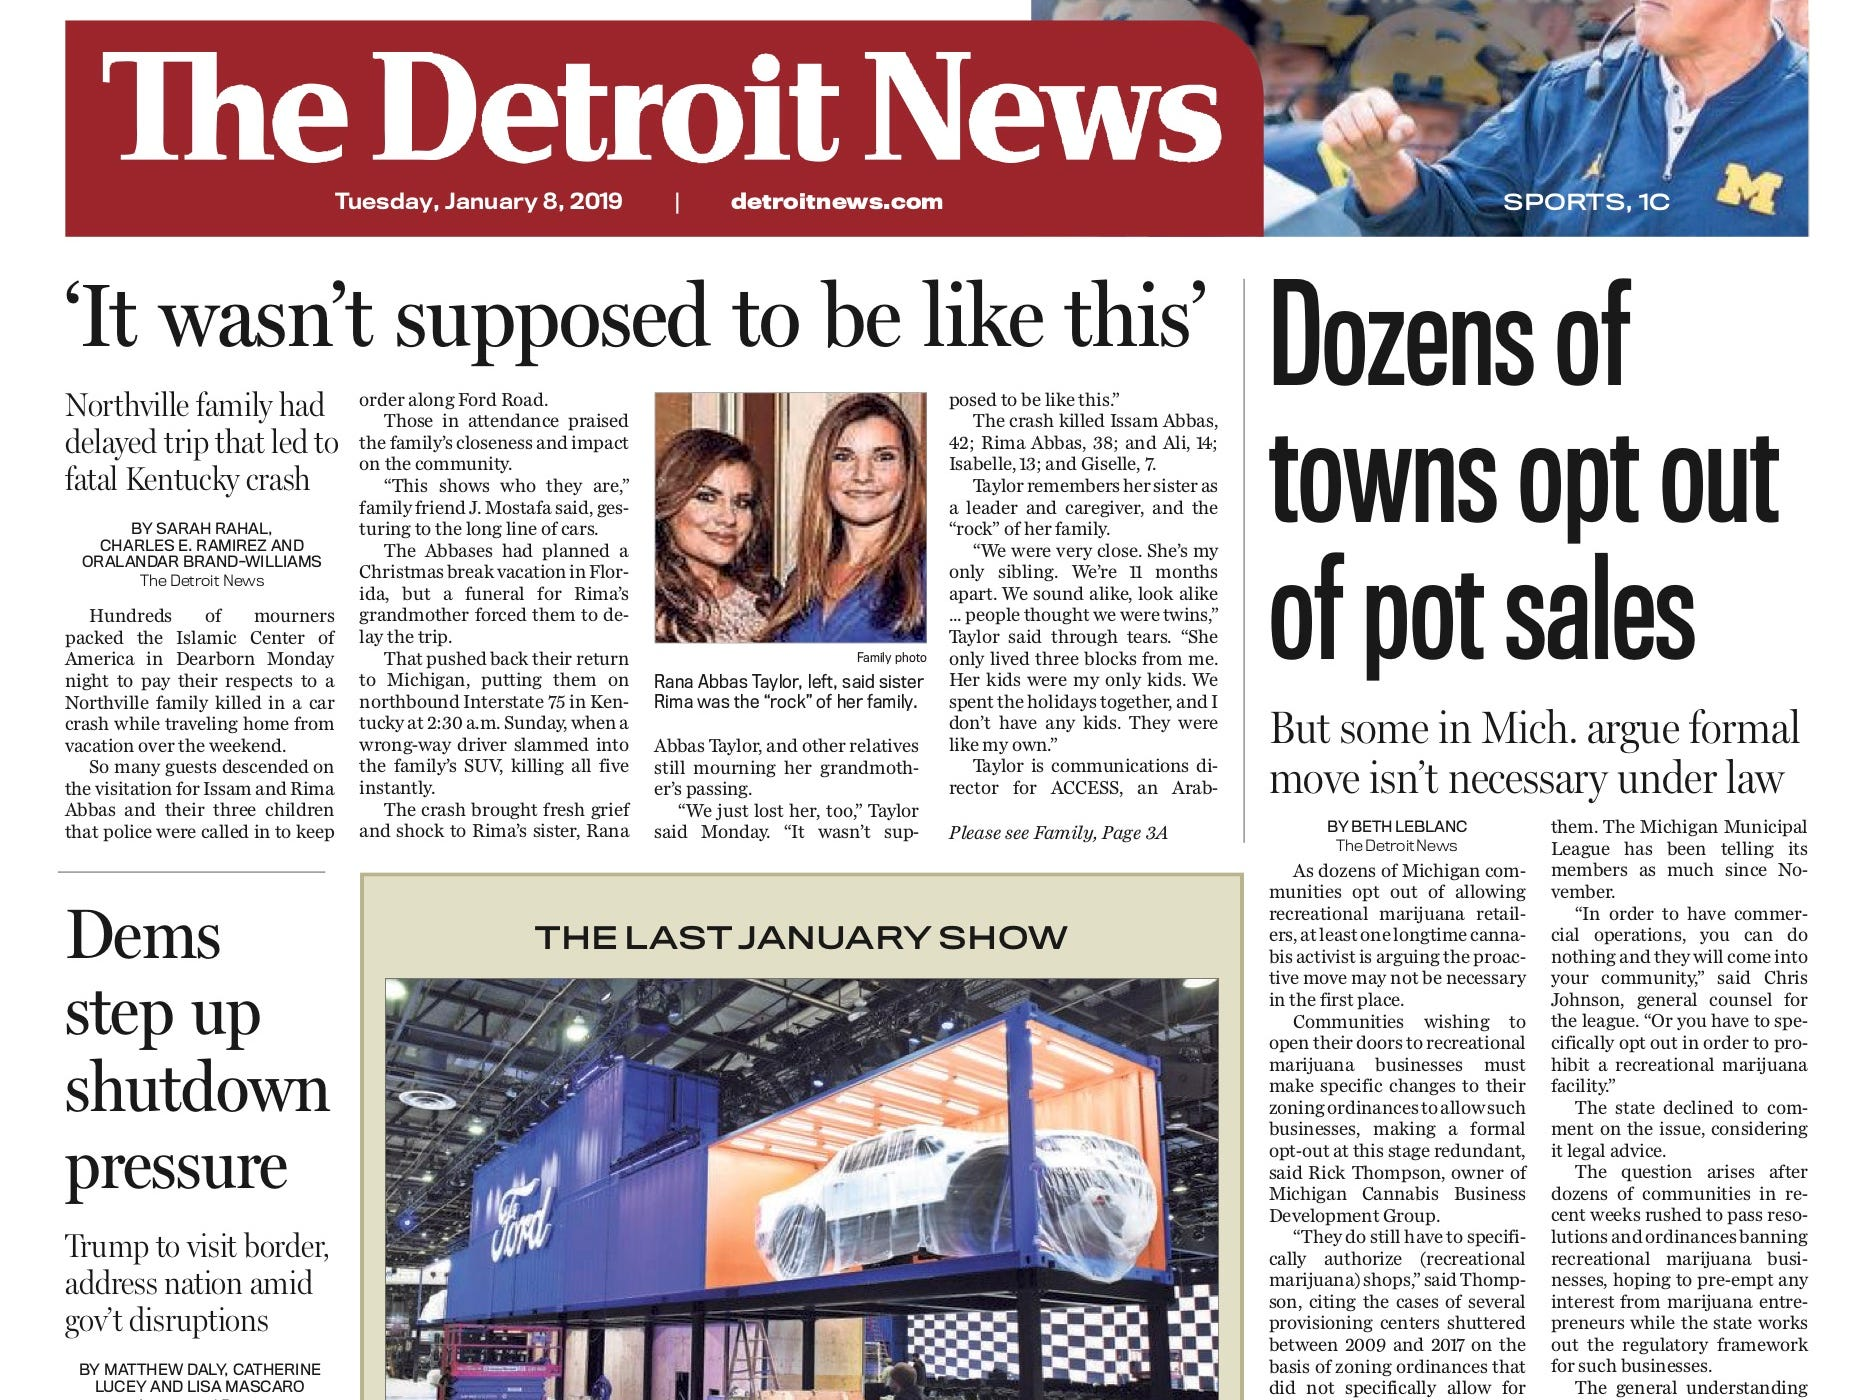 The front page of the Detroit News on January 8, 2019.